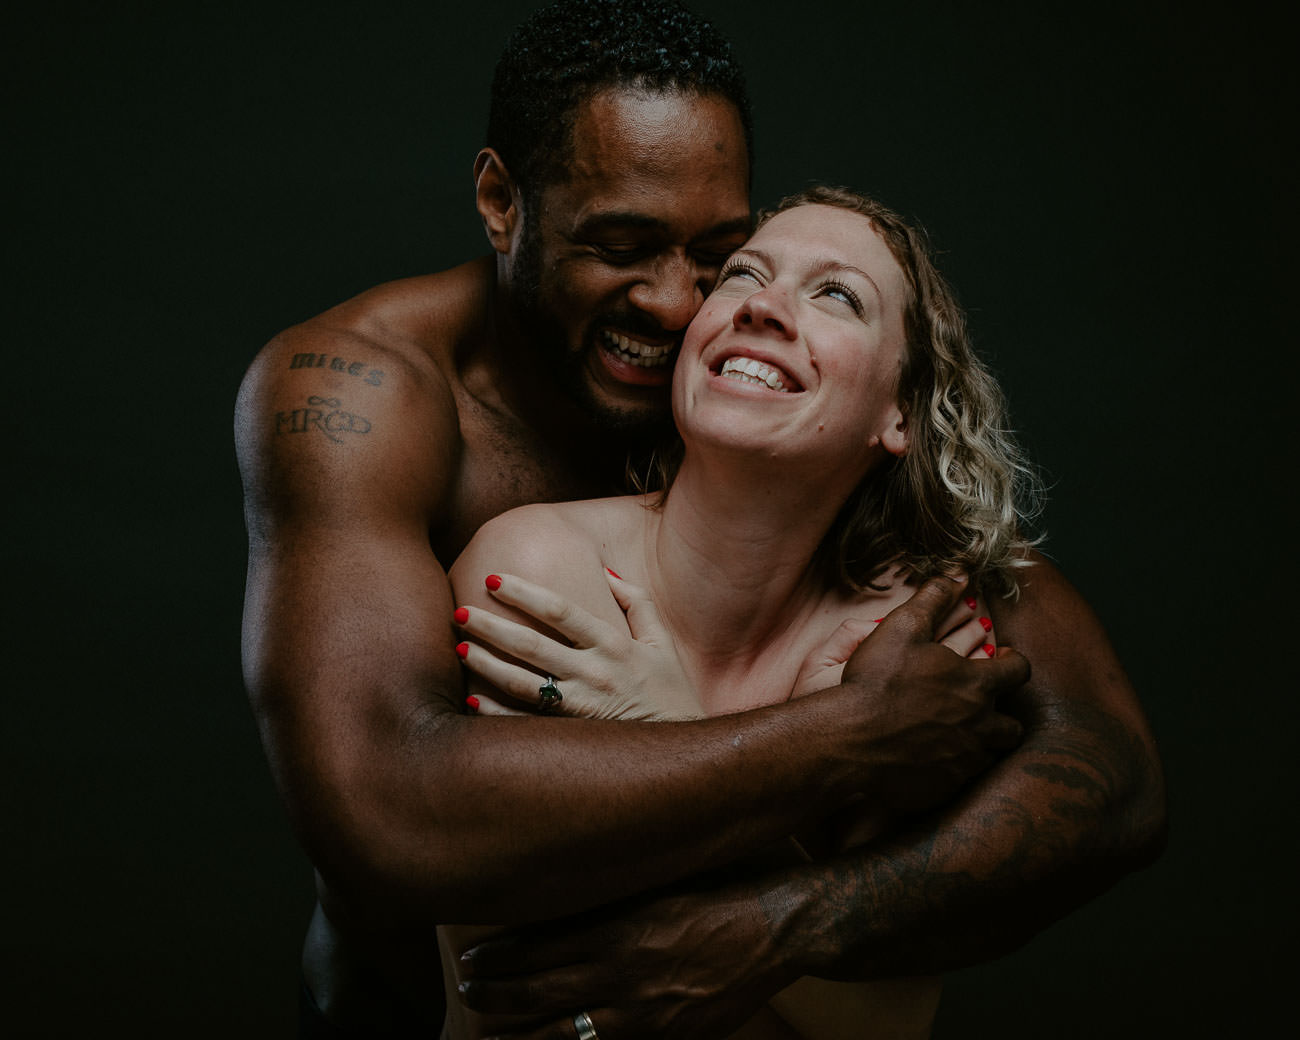 intimate couples photo session